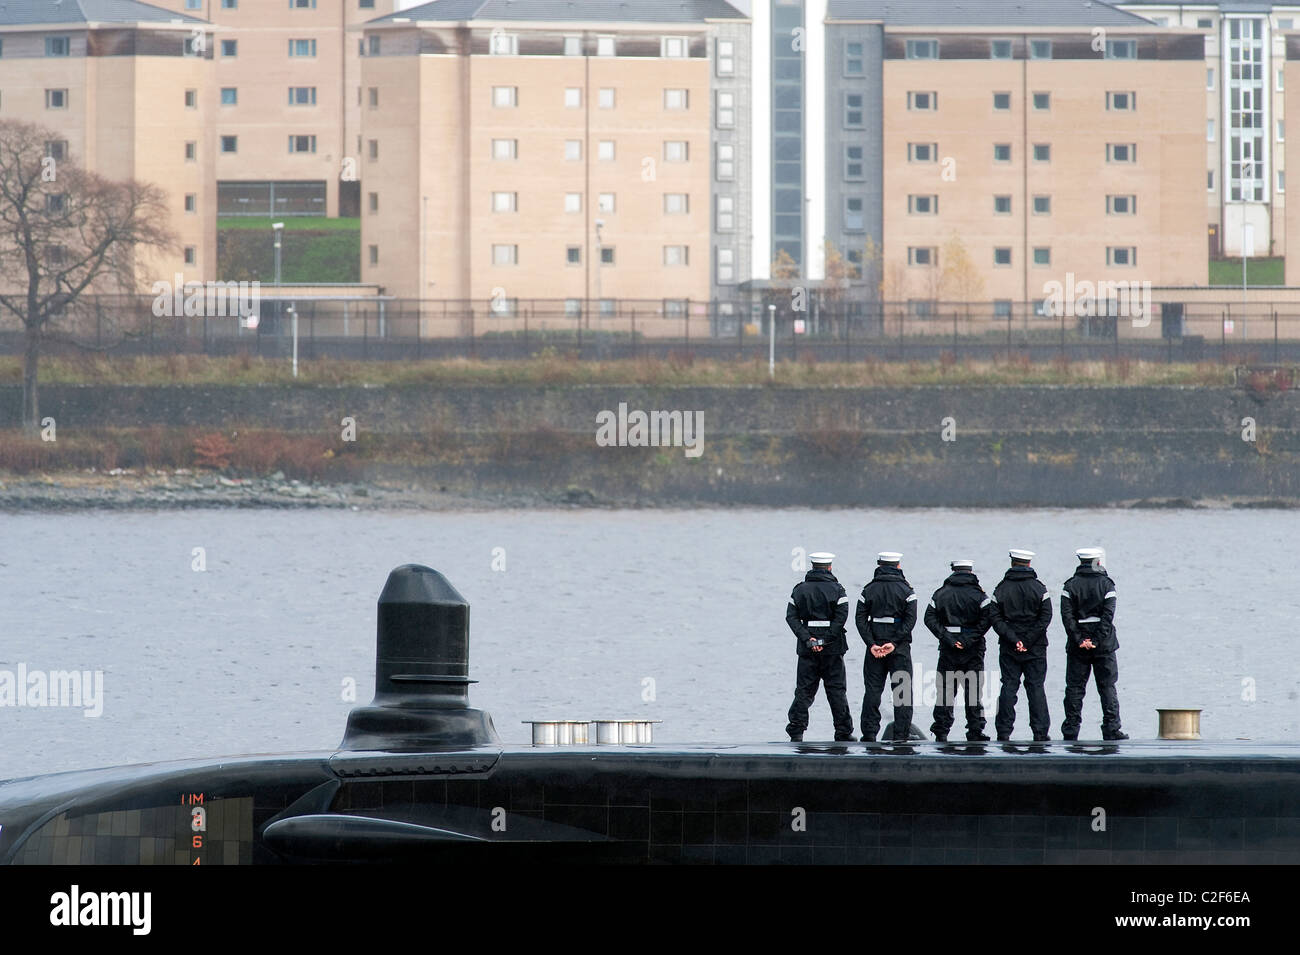 HMS Astute, the Royal Navy's latest nuclear submarine sail up Gareloch on the Firth of Cylde to her new base - Stock Image